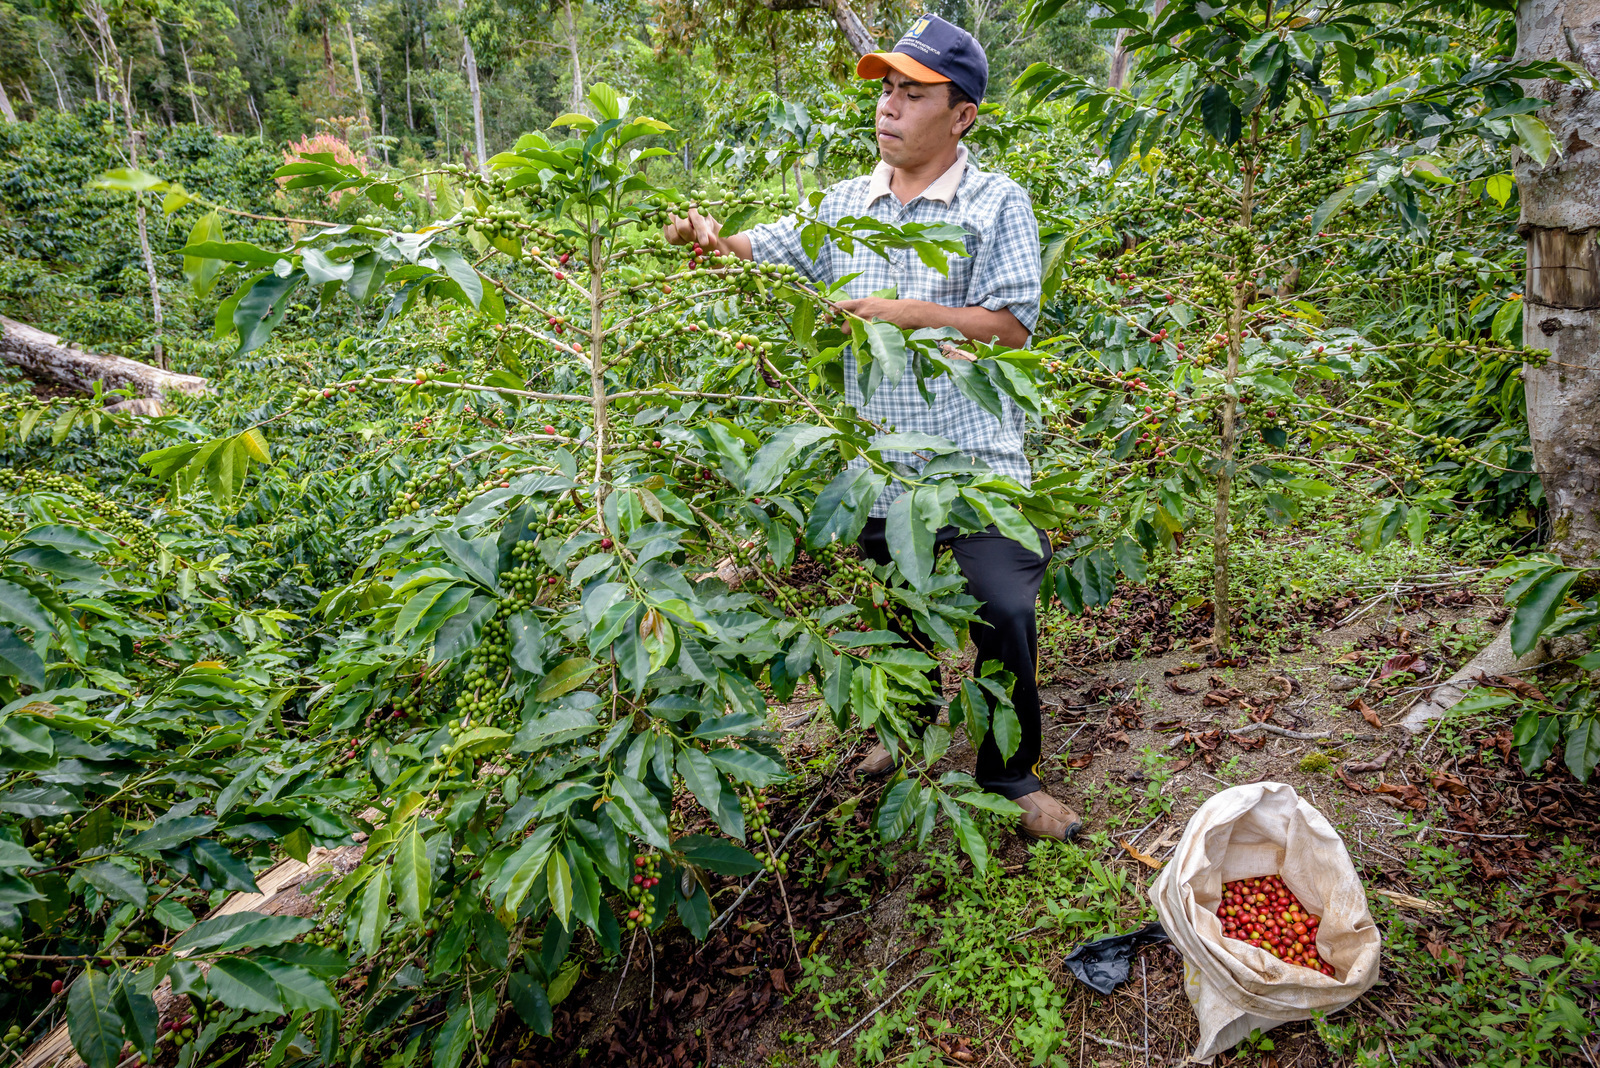 A male farmer harvesting coffee berries from a large bush. A sack of red coffee berries is on the ground beside him.